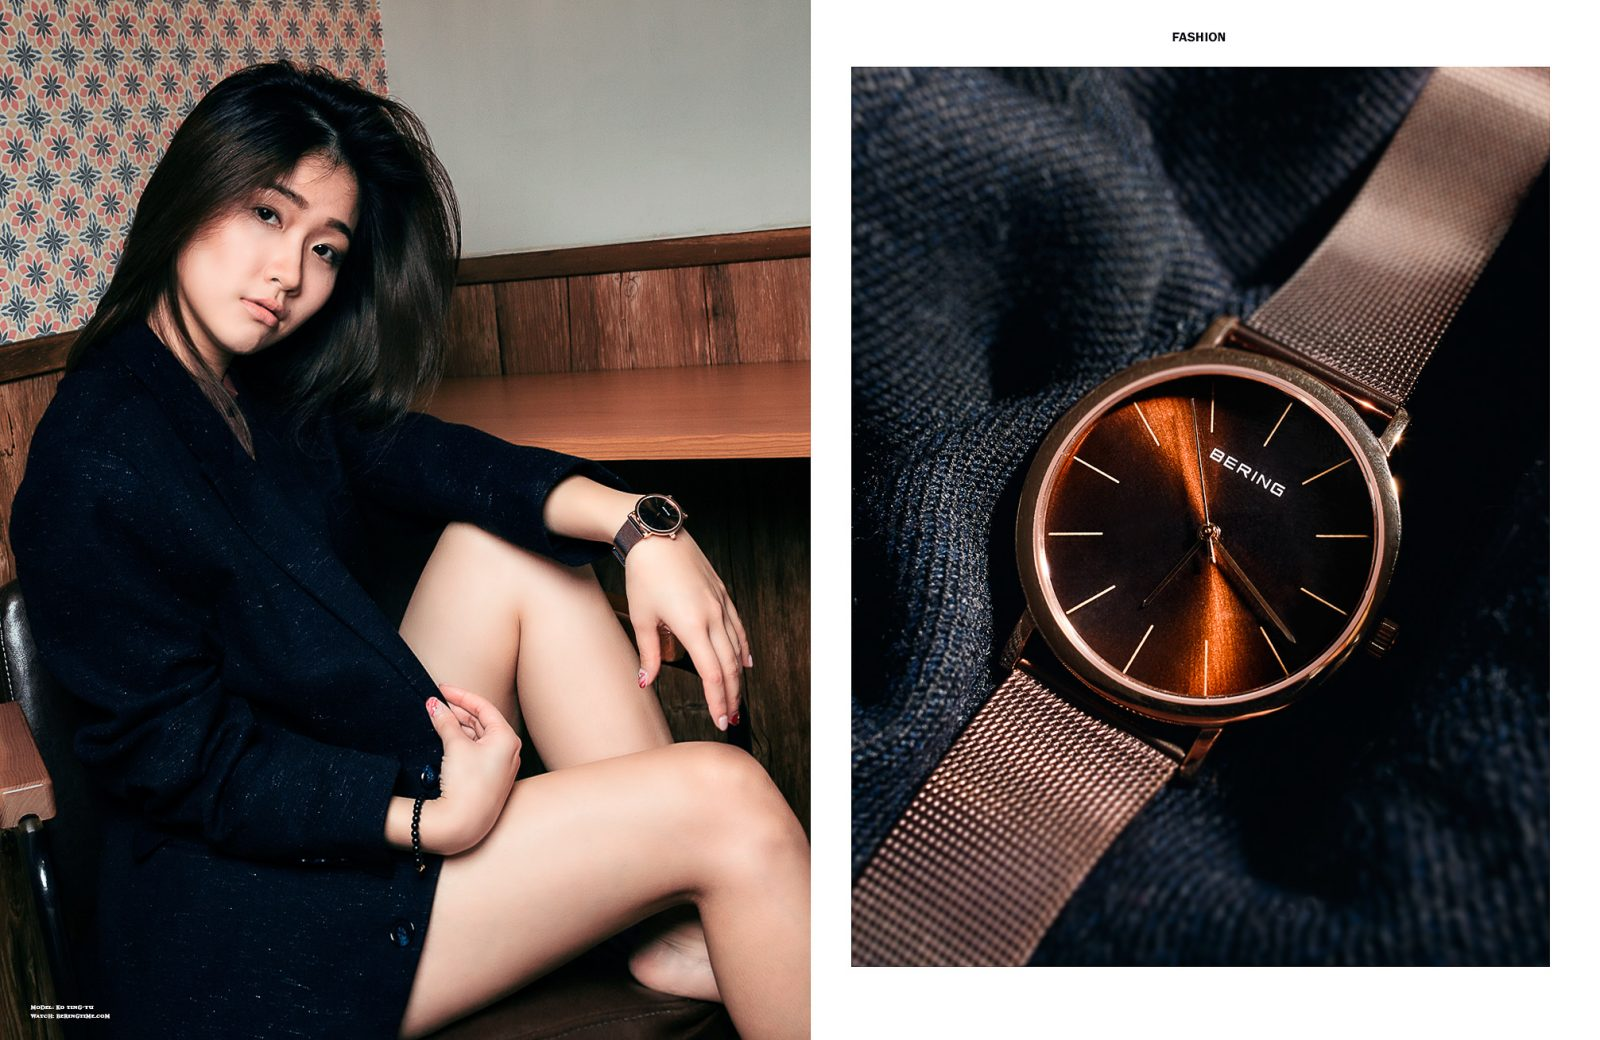 Lifestyle- , Fashion- , Productphotography by Cedric Paquet. Let me tell your stories or bring your products to shine.